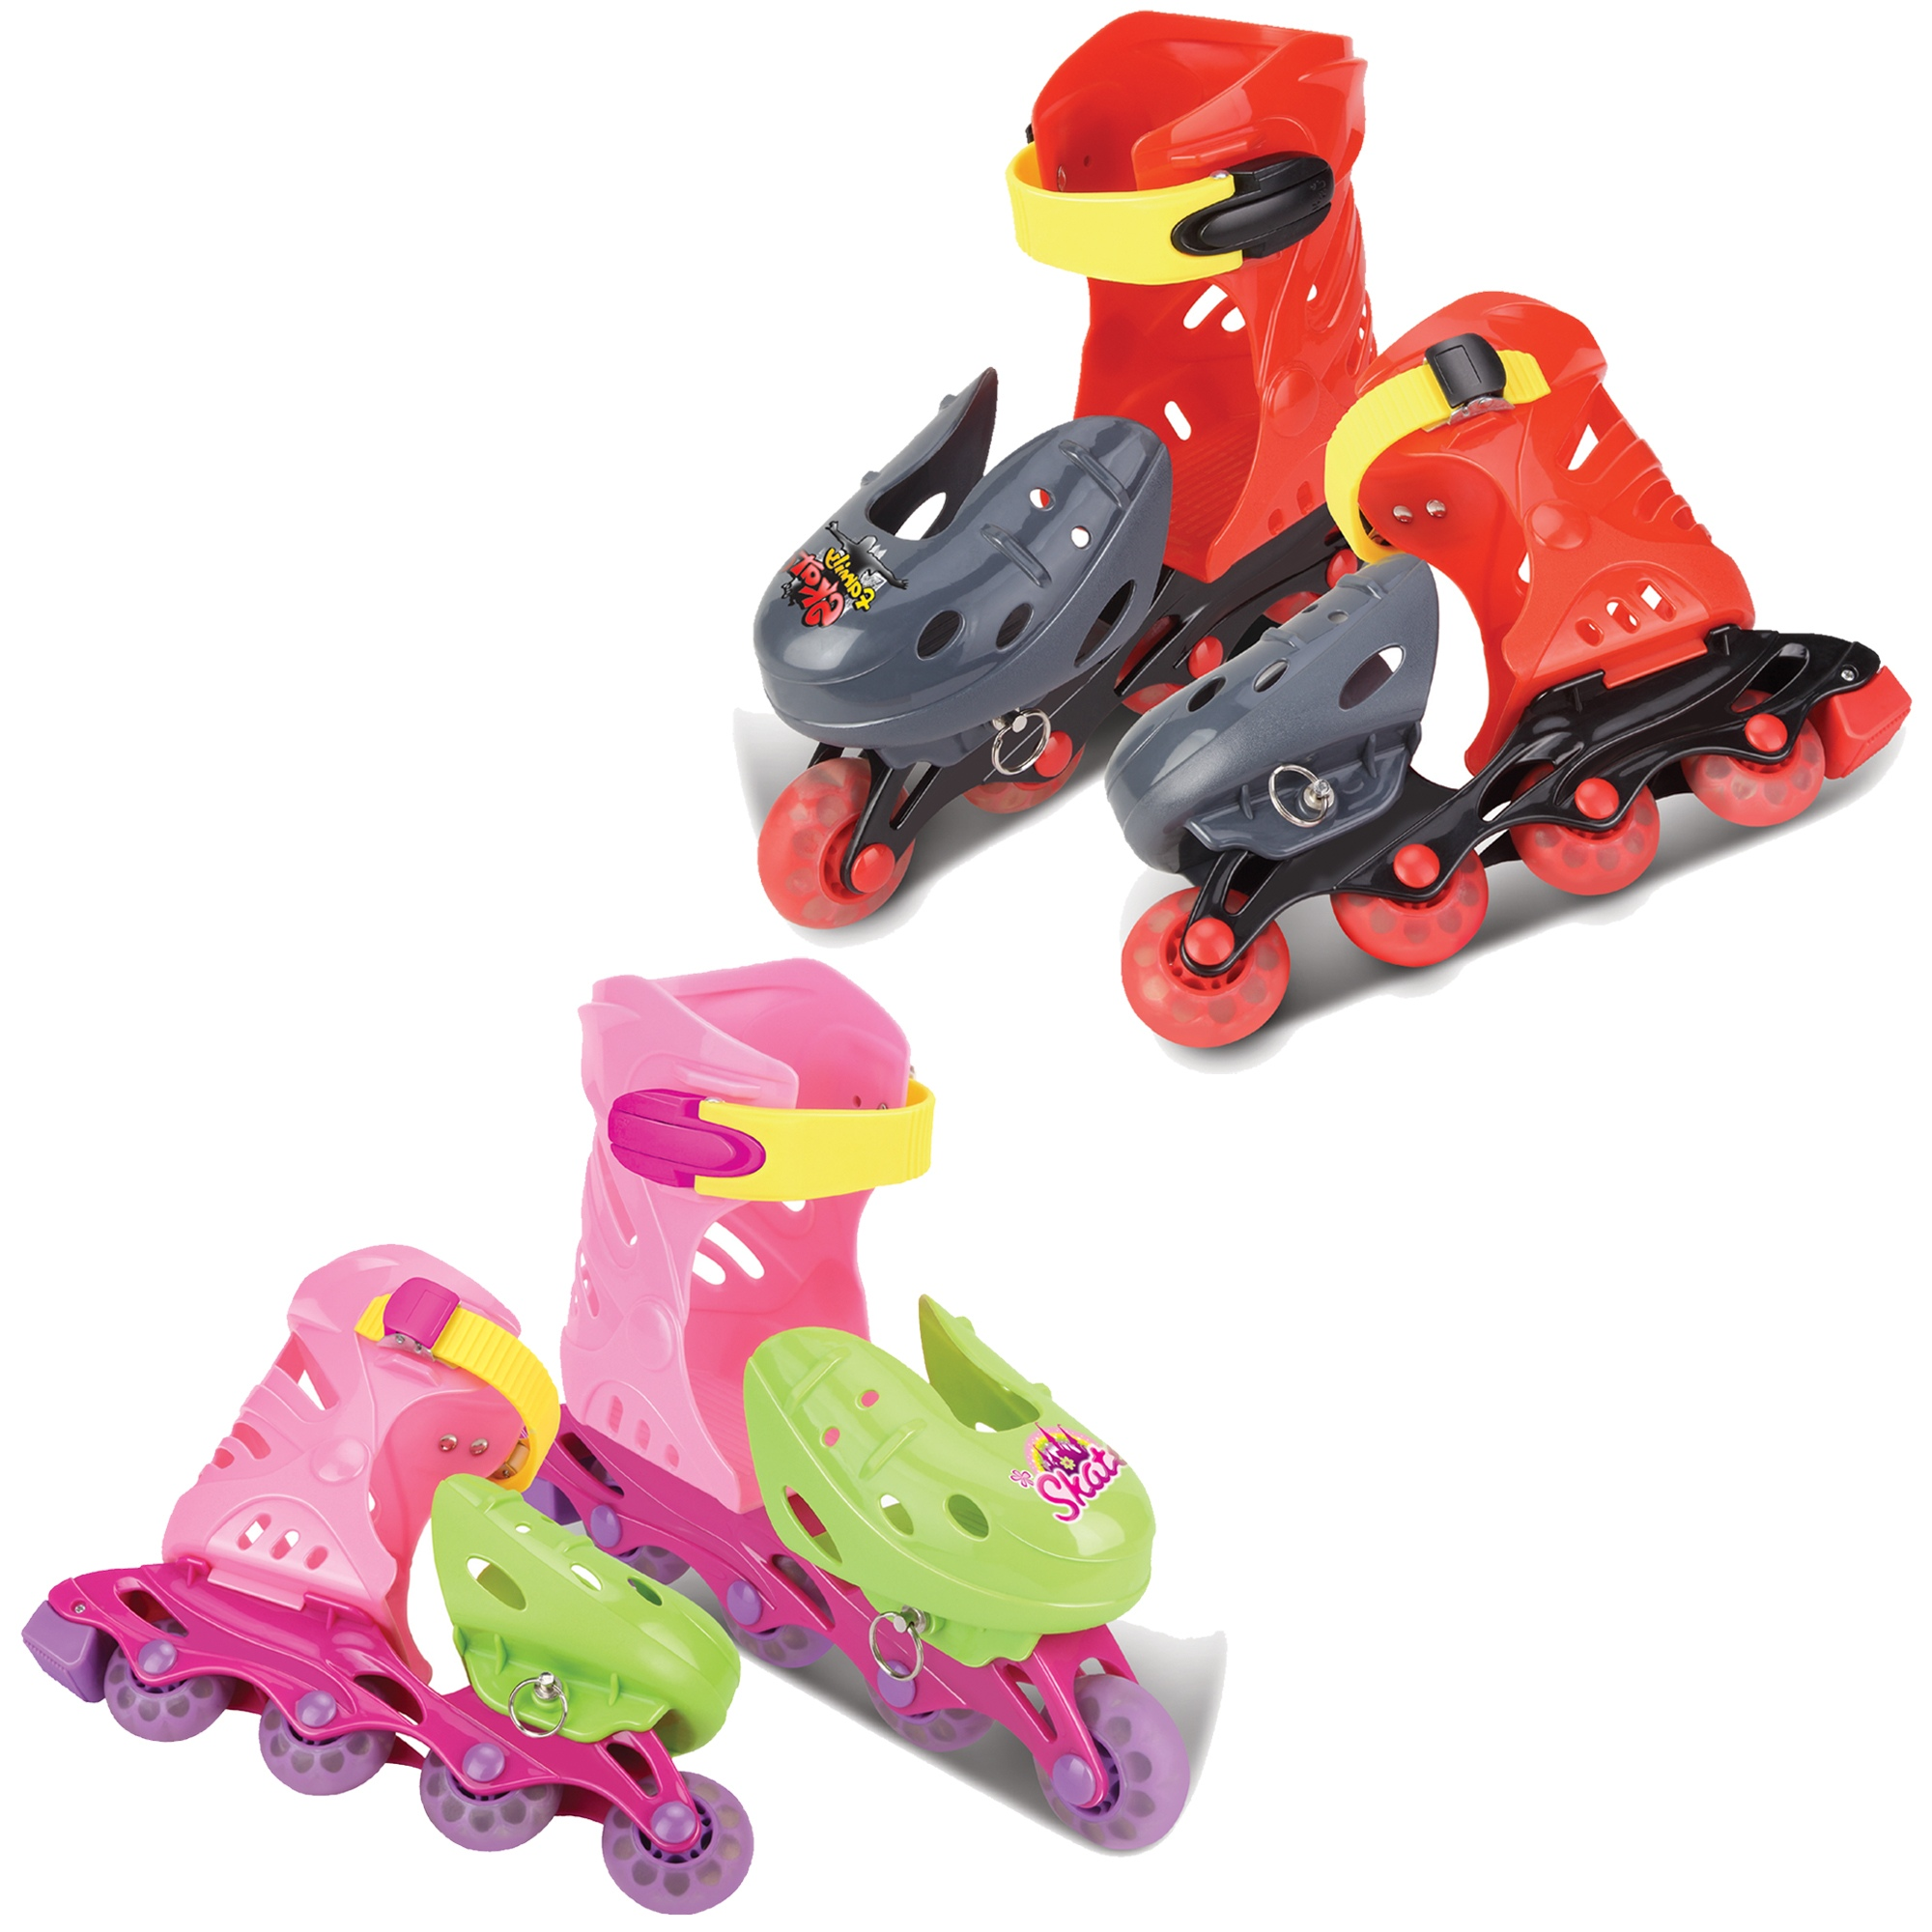 Available in Red//Black /& Pink//Green URBN Toys Size 10.5-15 Adjustable Kids Childrens Roller Skates Blades In-Liners with 4 Wheels for Skating Outdoors